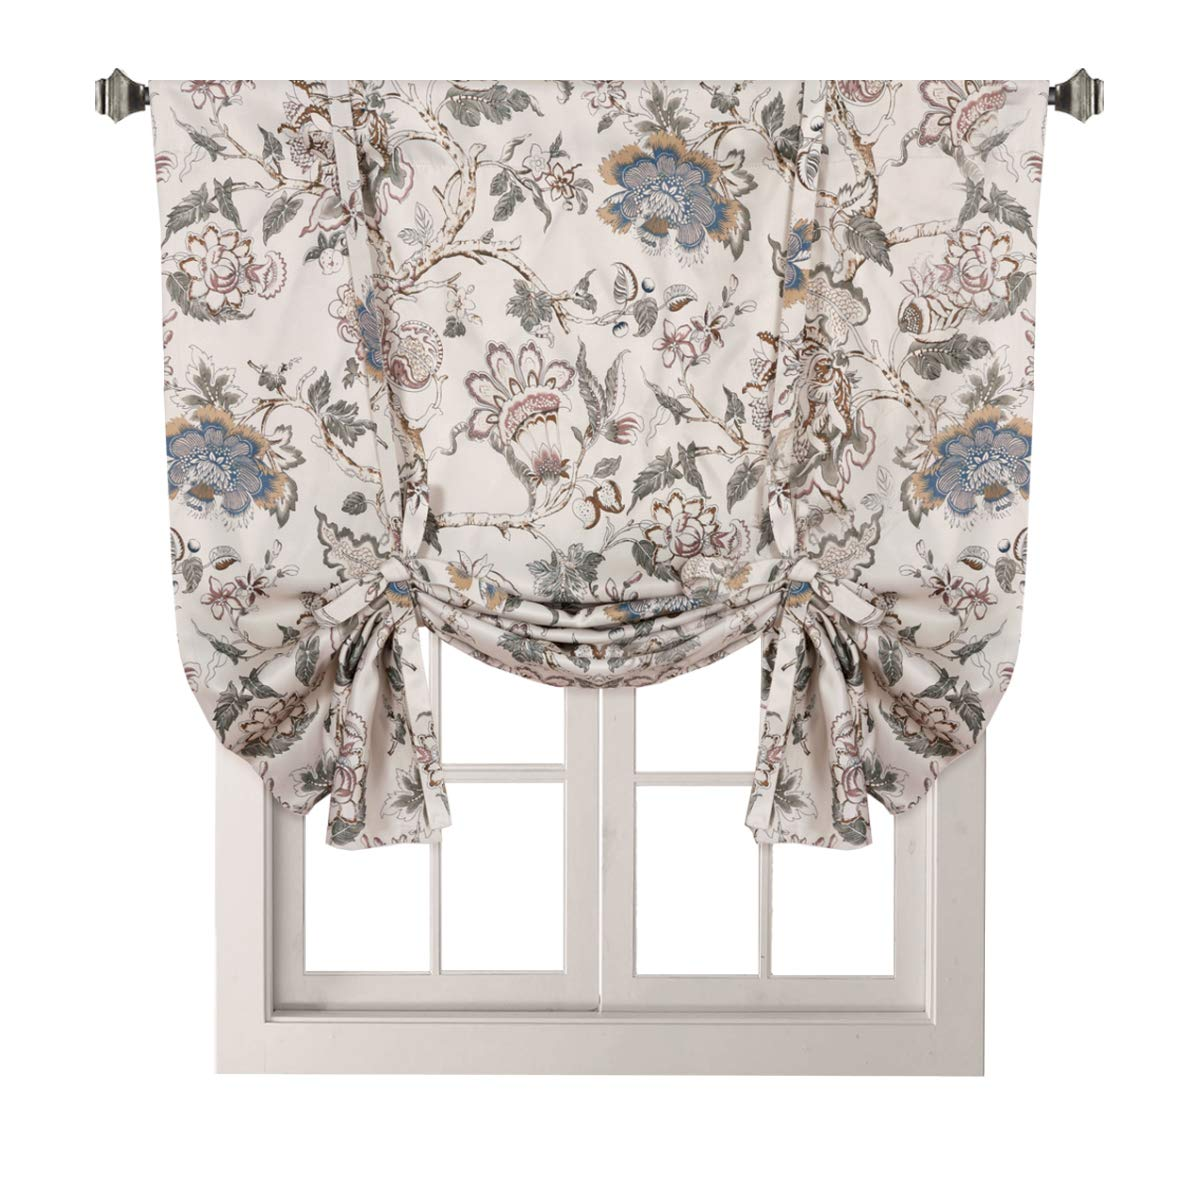 H.VERSAILTEX Thermal Insulated Blackout Curtain Adjustable Tie Up Shade Rod Pocket Panel for Small Window-42 Wide by 63'' Long-Vintage Floral Pattern in Sage and Brown